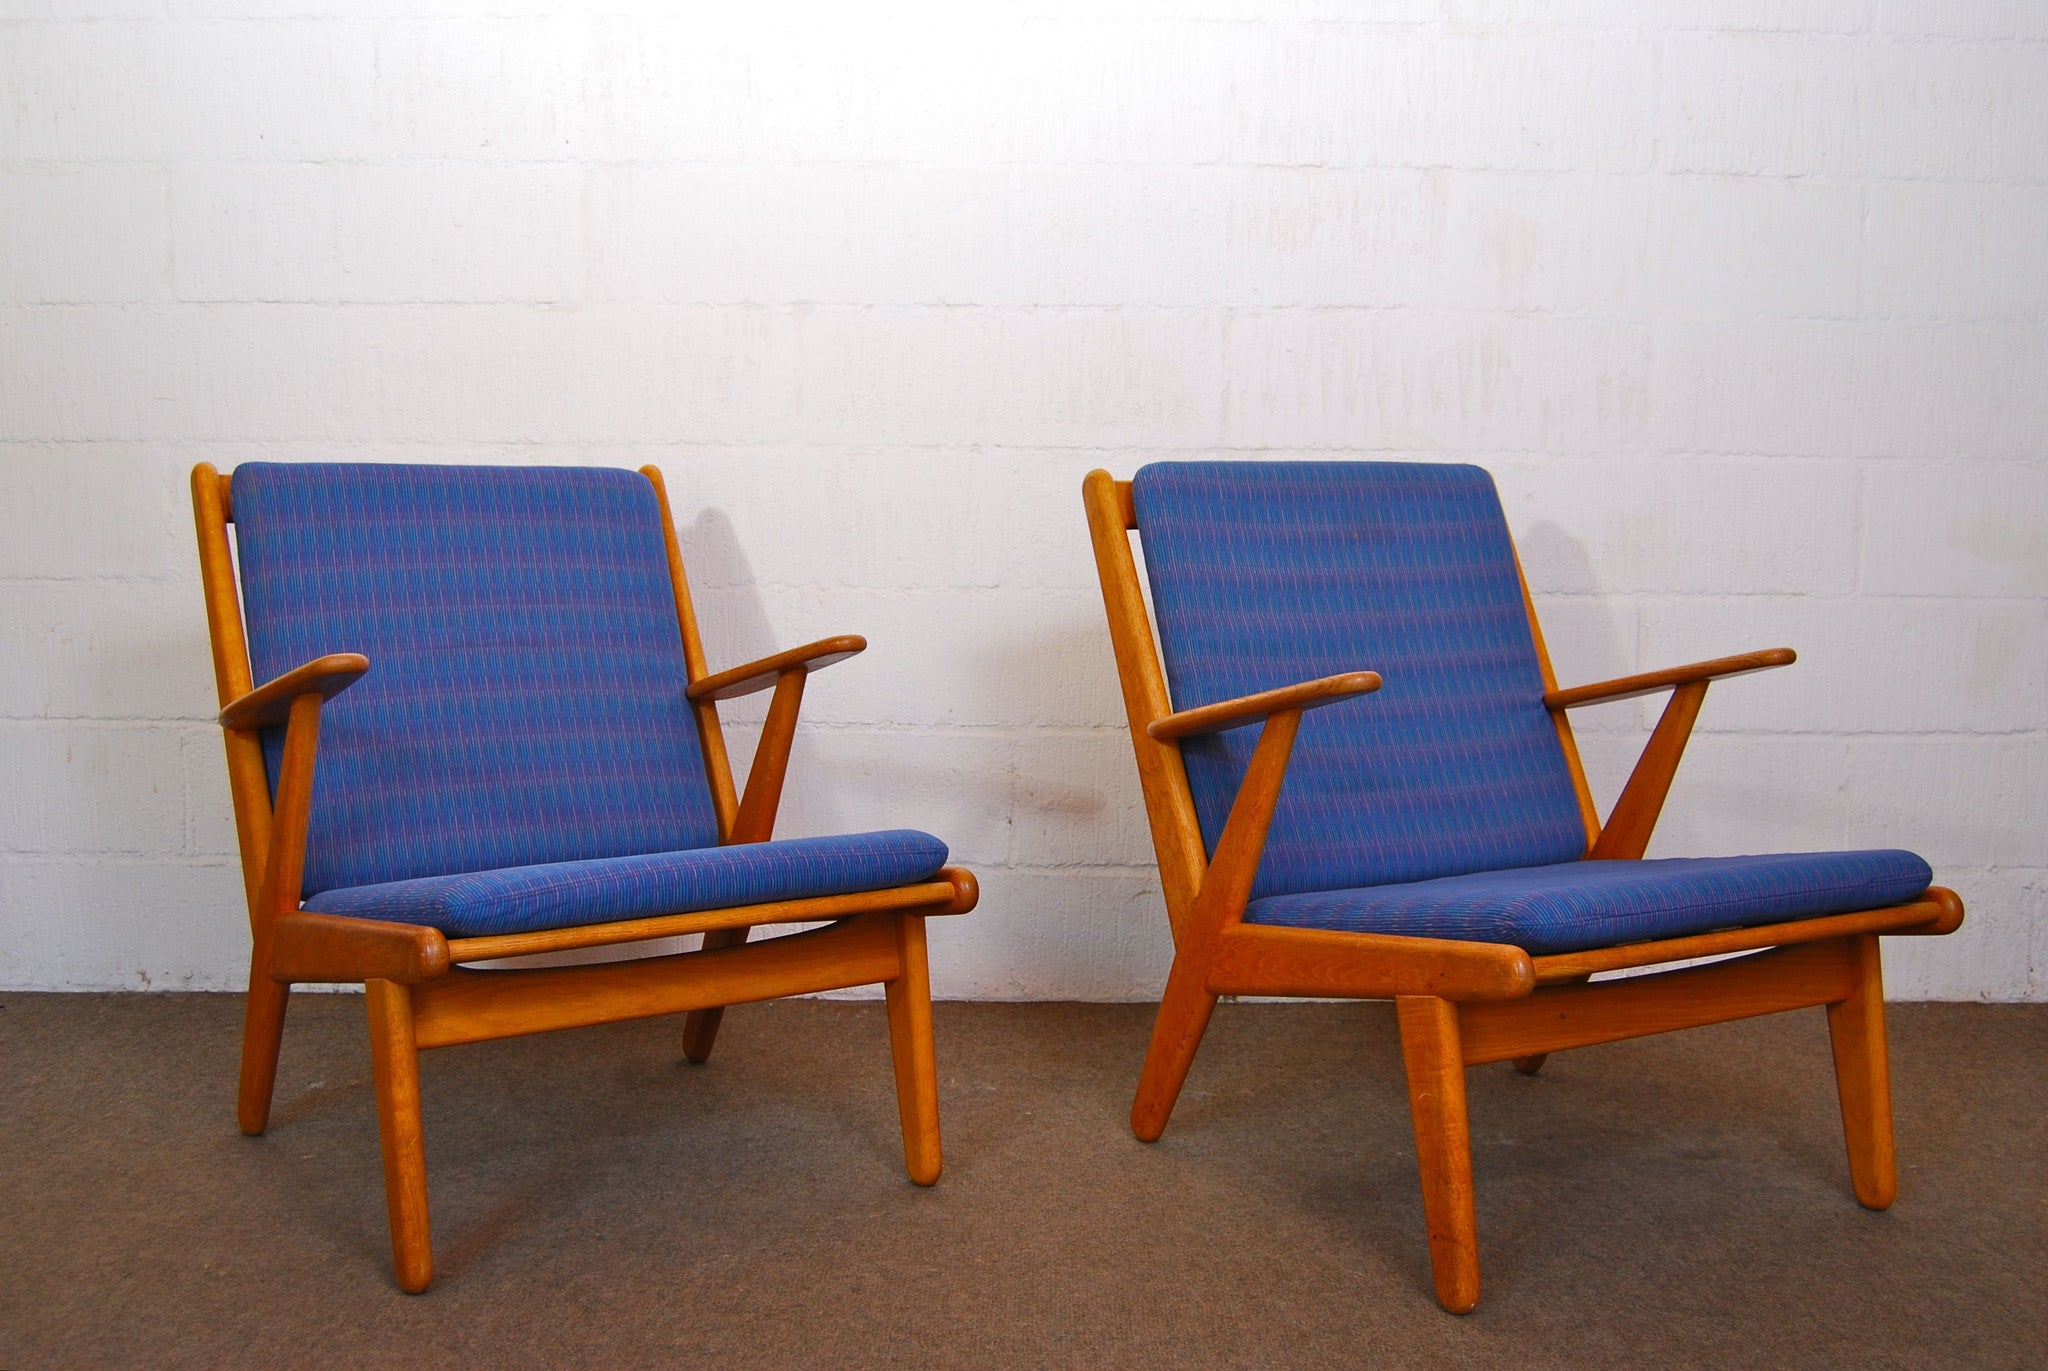 Pair of lounge chairs by Poul M. Volther